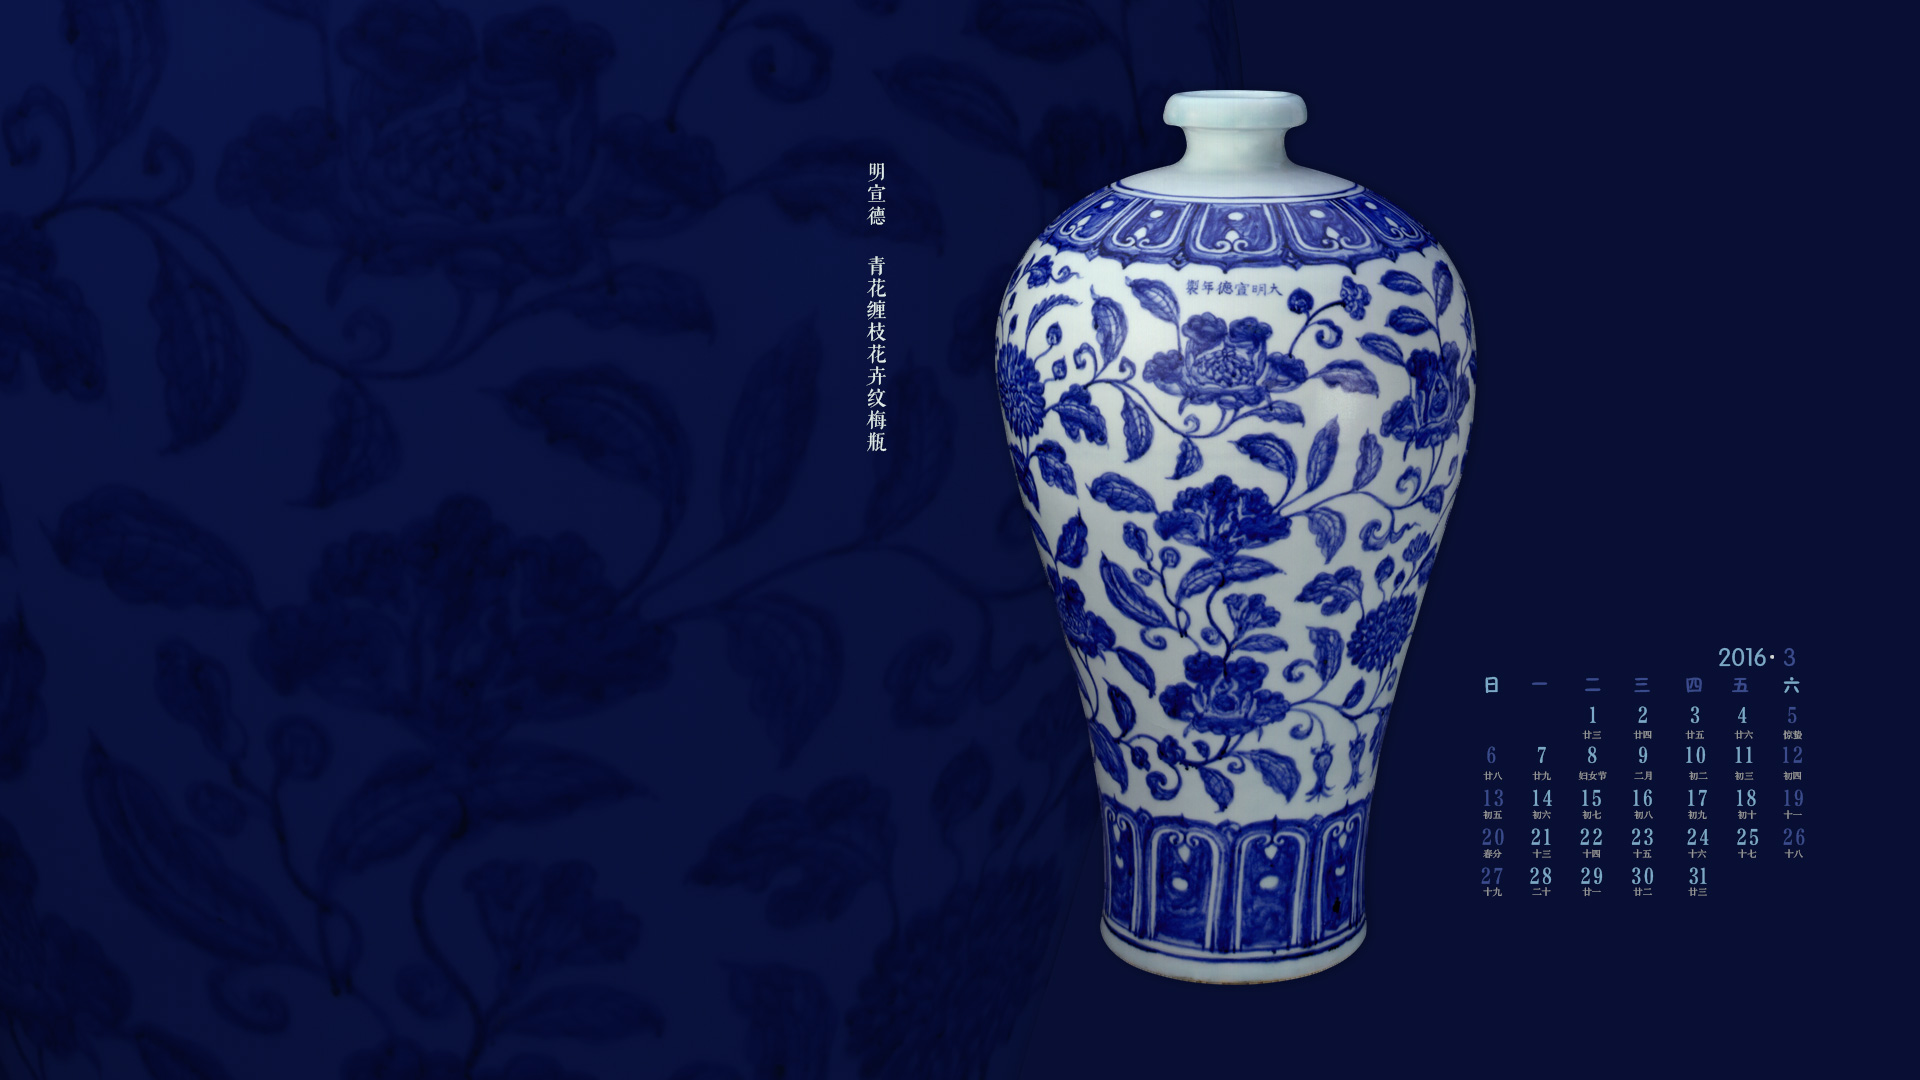 Wallpaper:Blue-and-white Prunus Vase with Interlocking Floral Design, Xuande reign (1426-1435), Ming dynasty